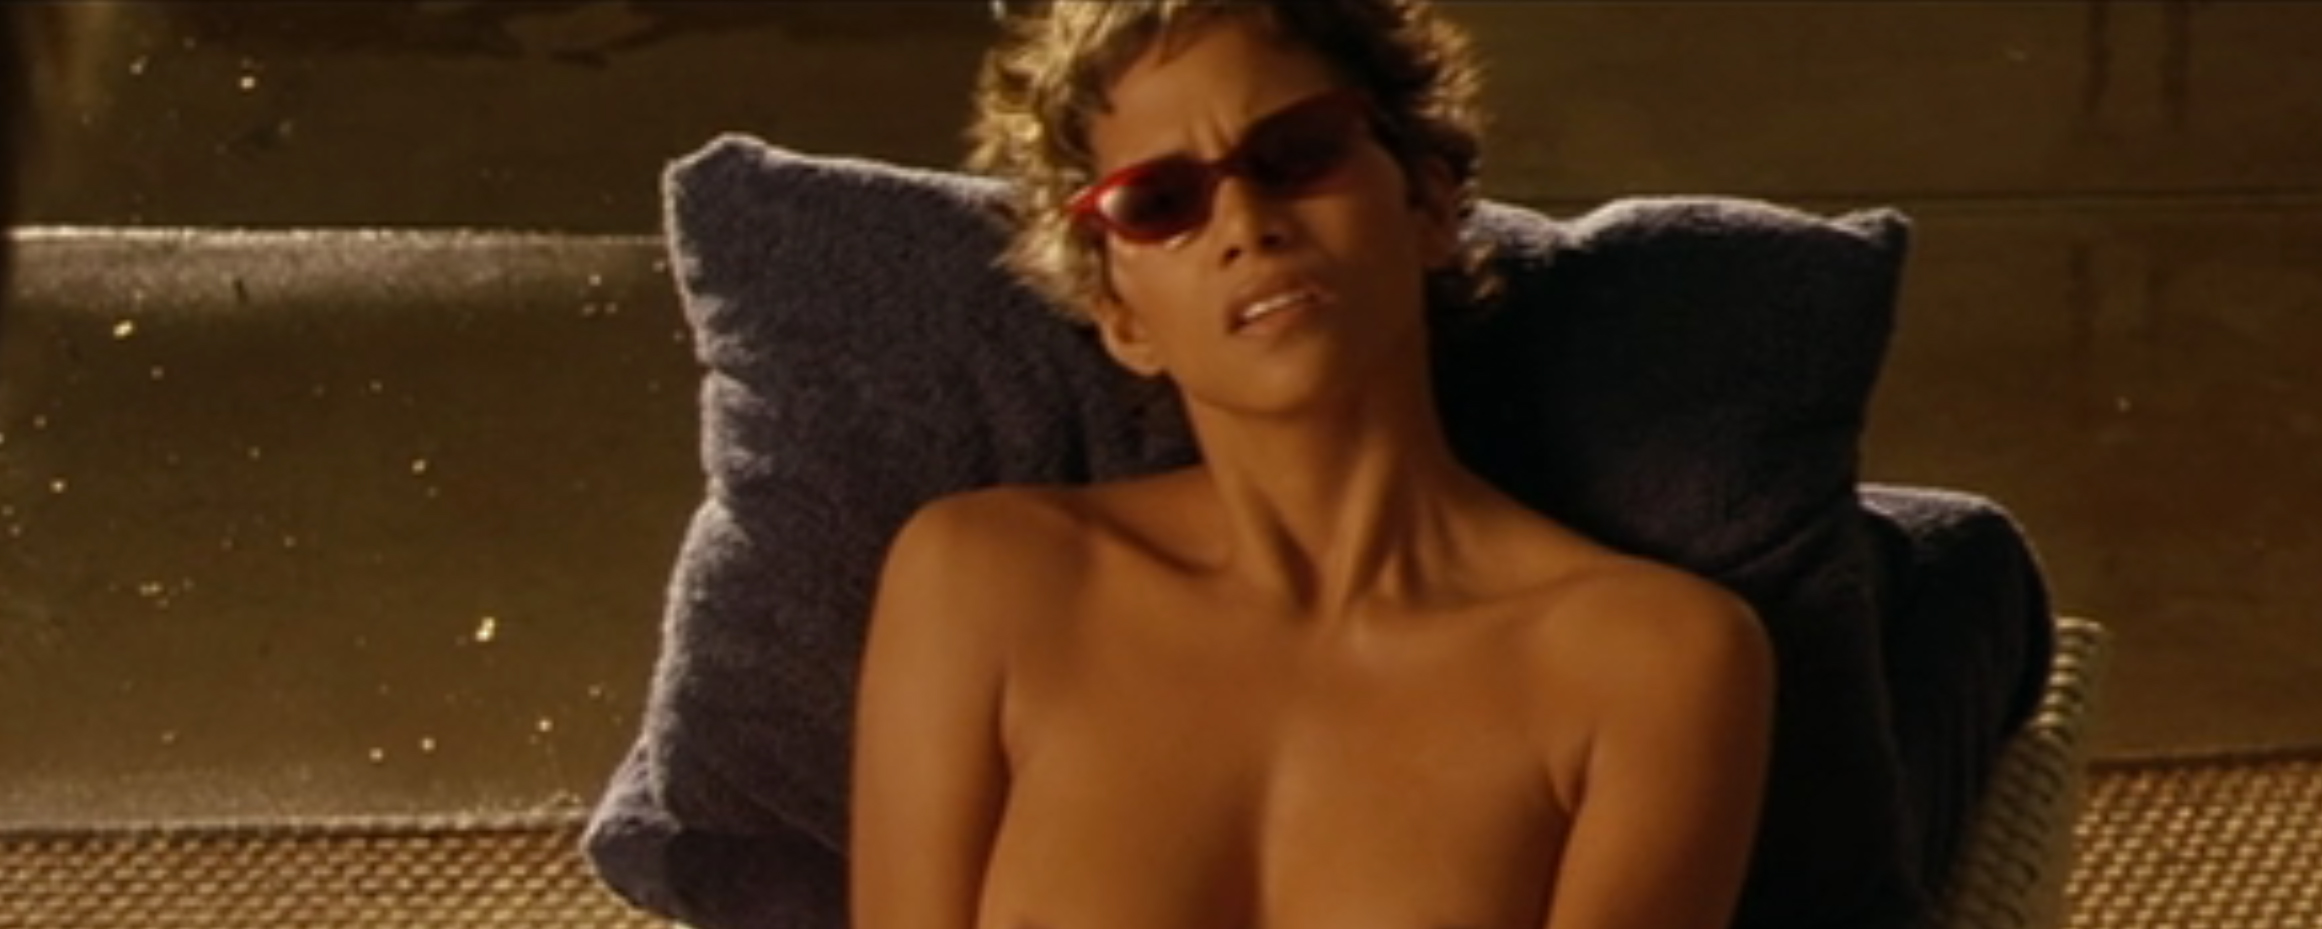 Seems me, Halle berry swordfish scene very